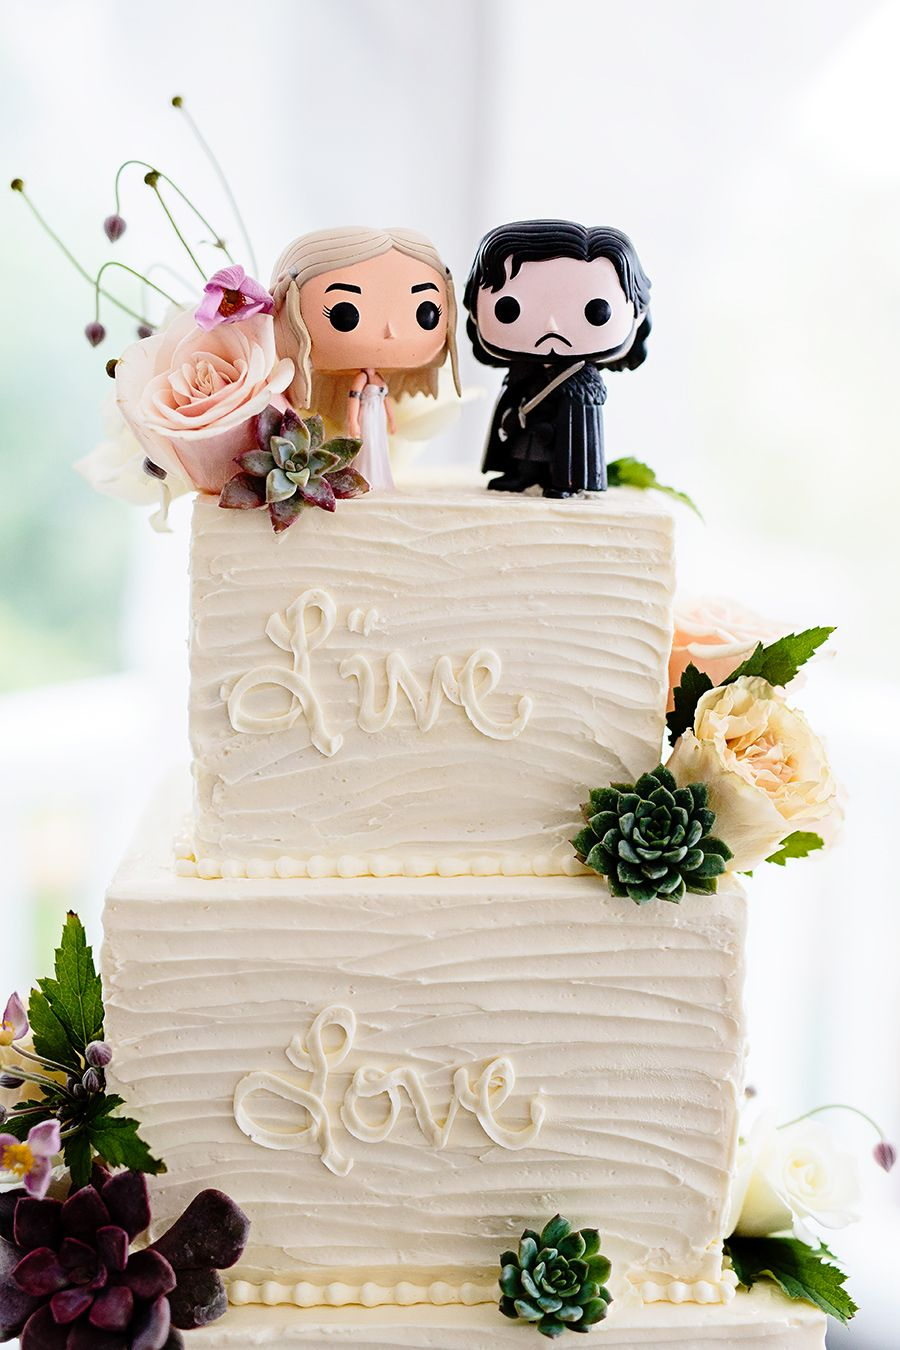 Game of Thrones themed wedding cake | Wedding Cakes, Desserts and ...